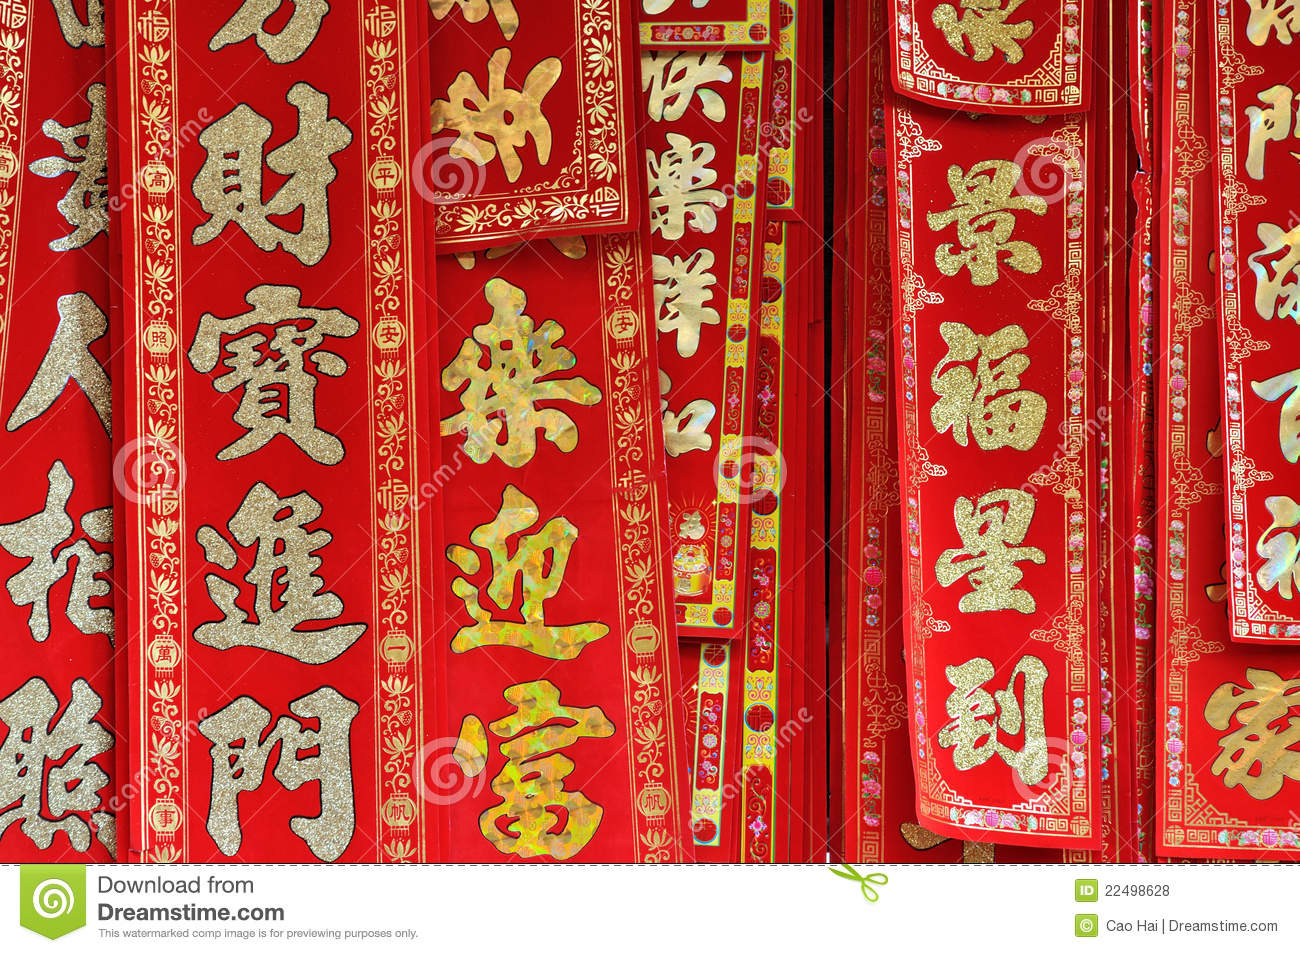 Red Couplet With Good Wishes In Chinese New Year Royalty Free Stock ...